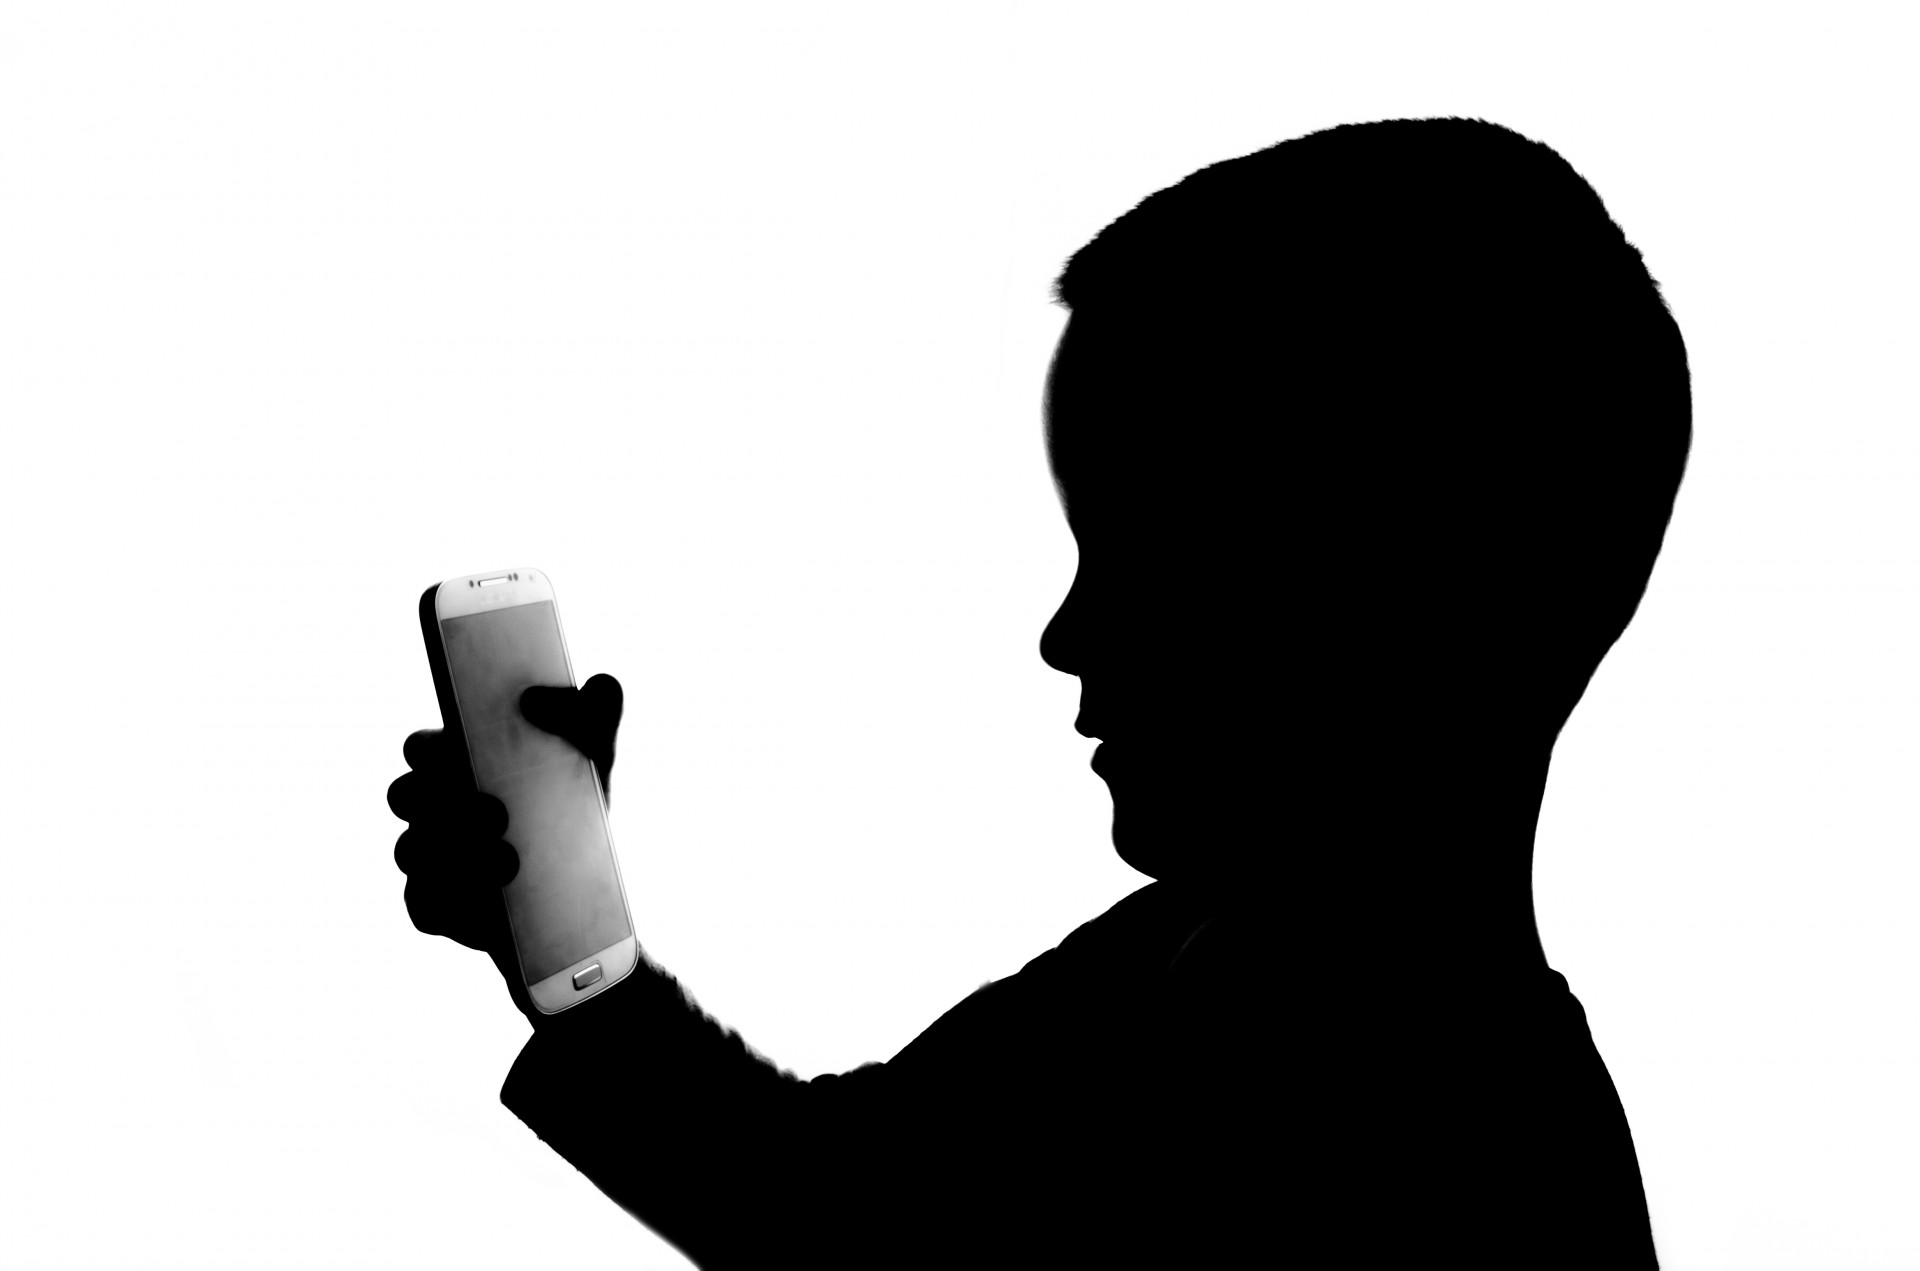 silhouette of boy holding cell phone